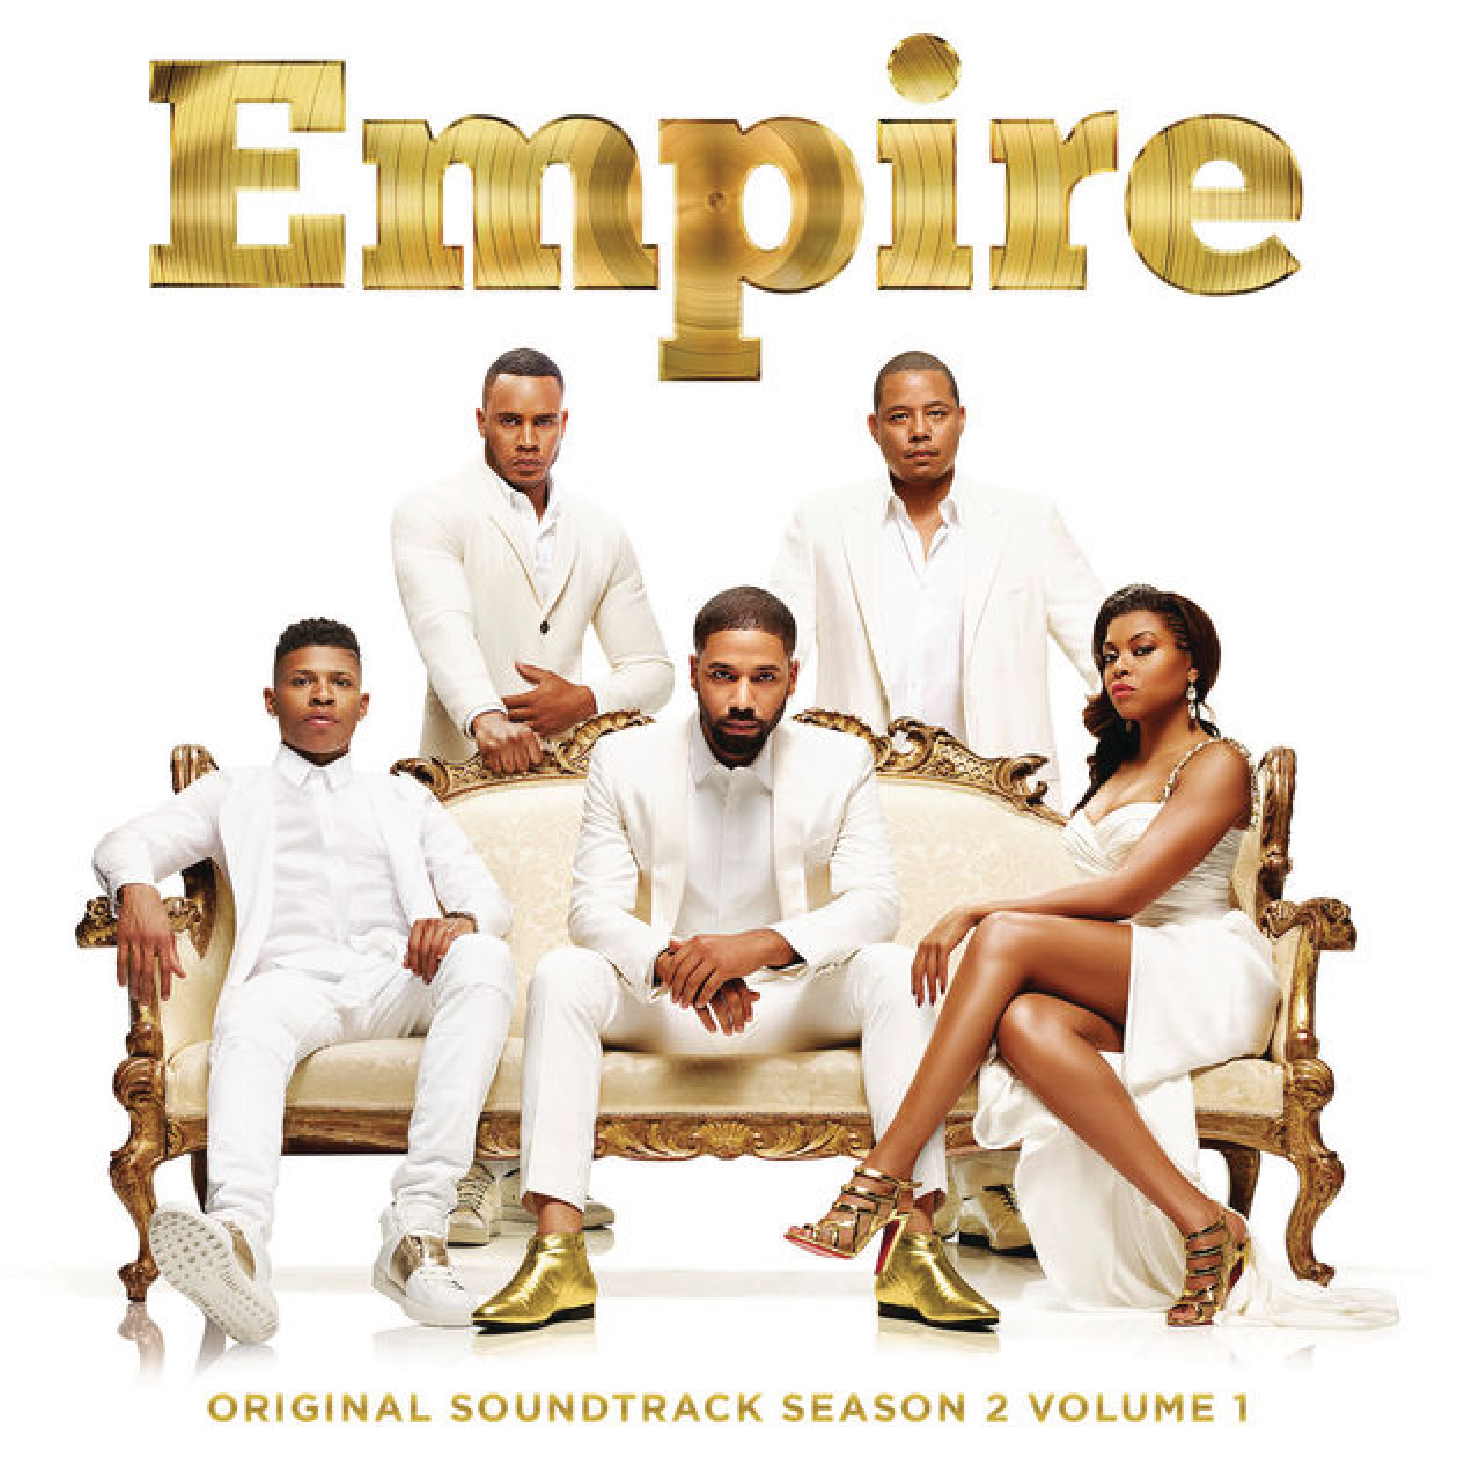 Powerful by Alicia Keys and Jussie Smollett - Empire Soundtrack. Written by Eskeerdo.